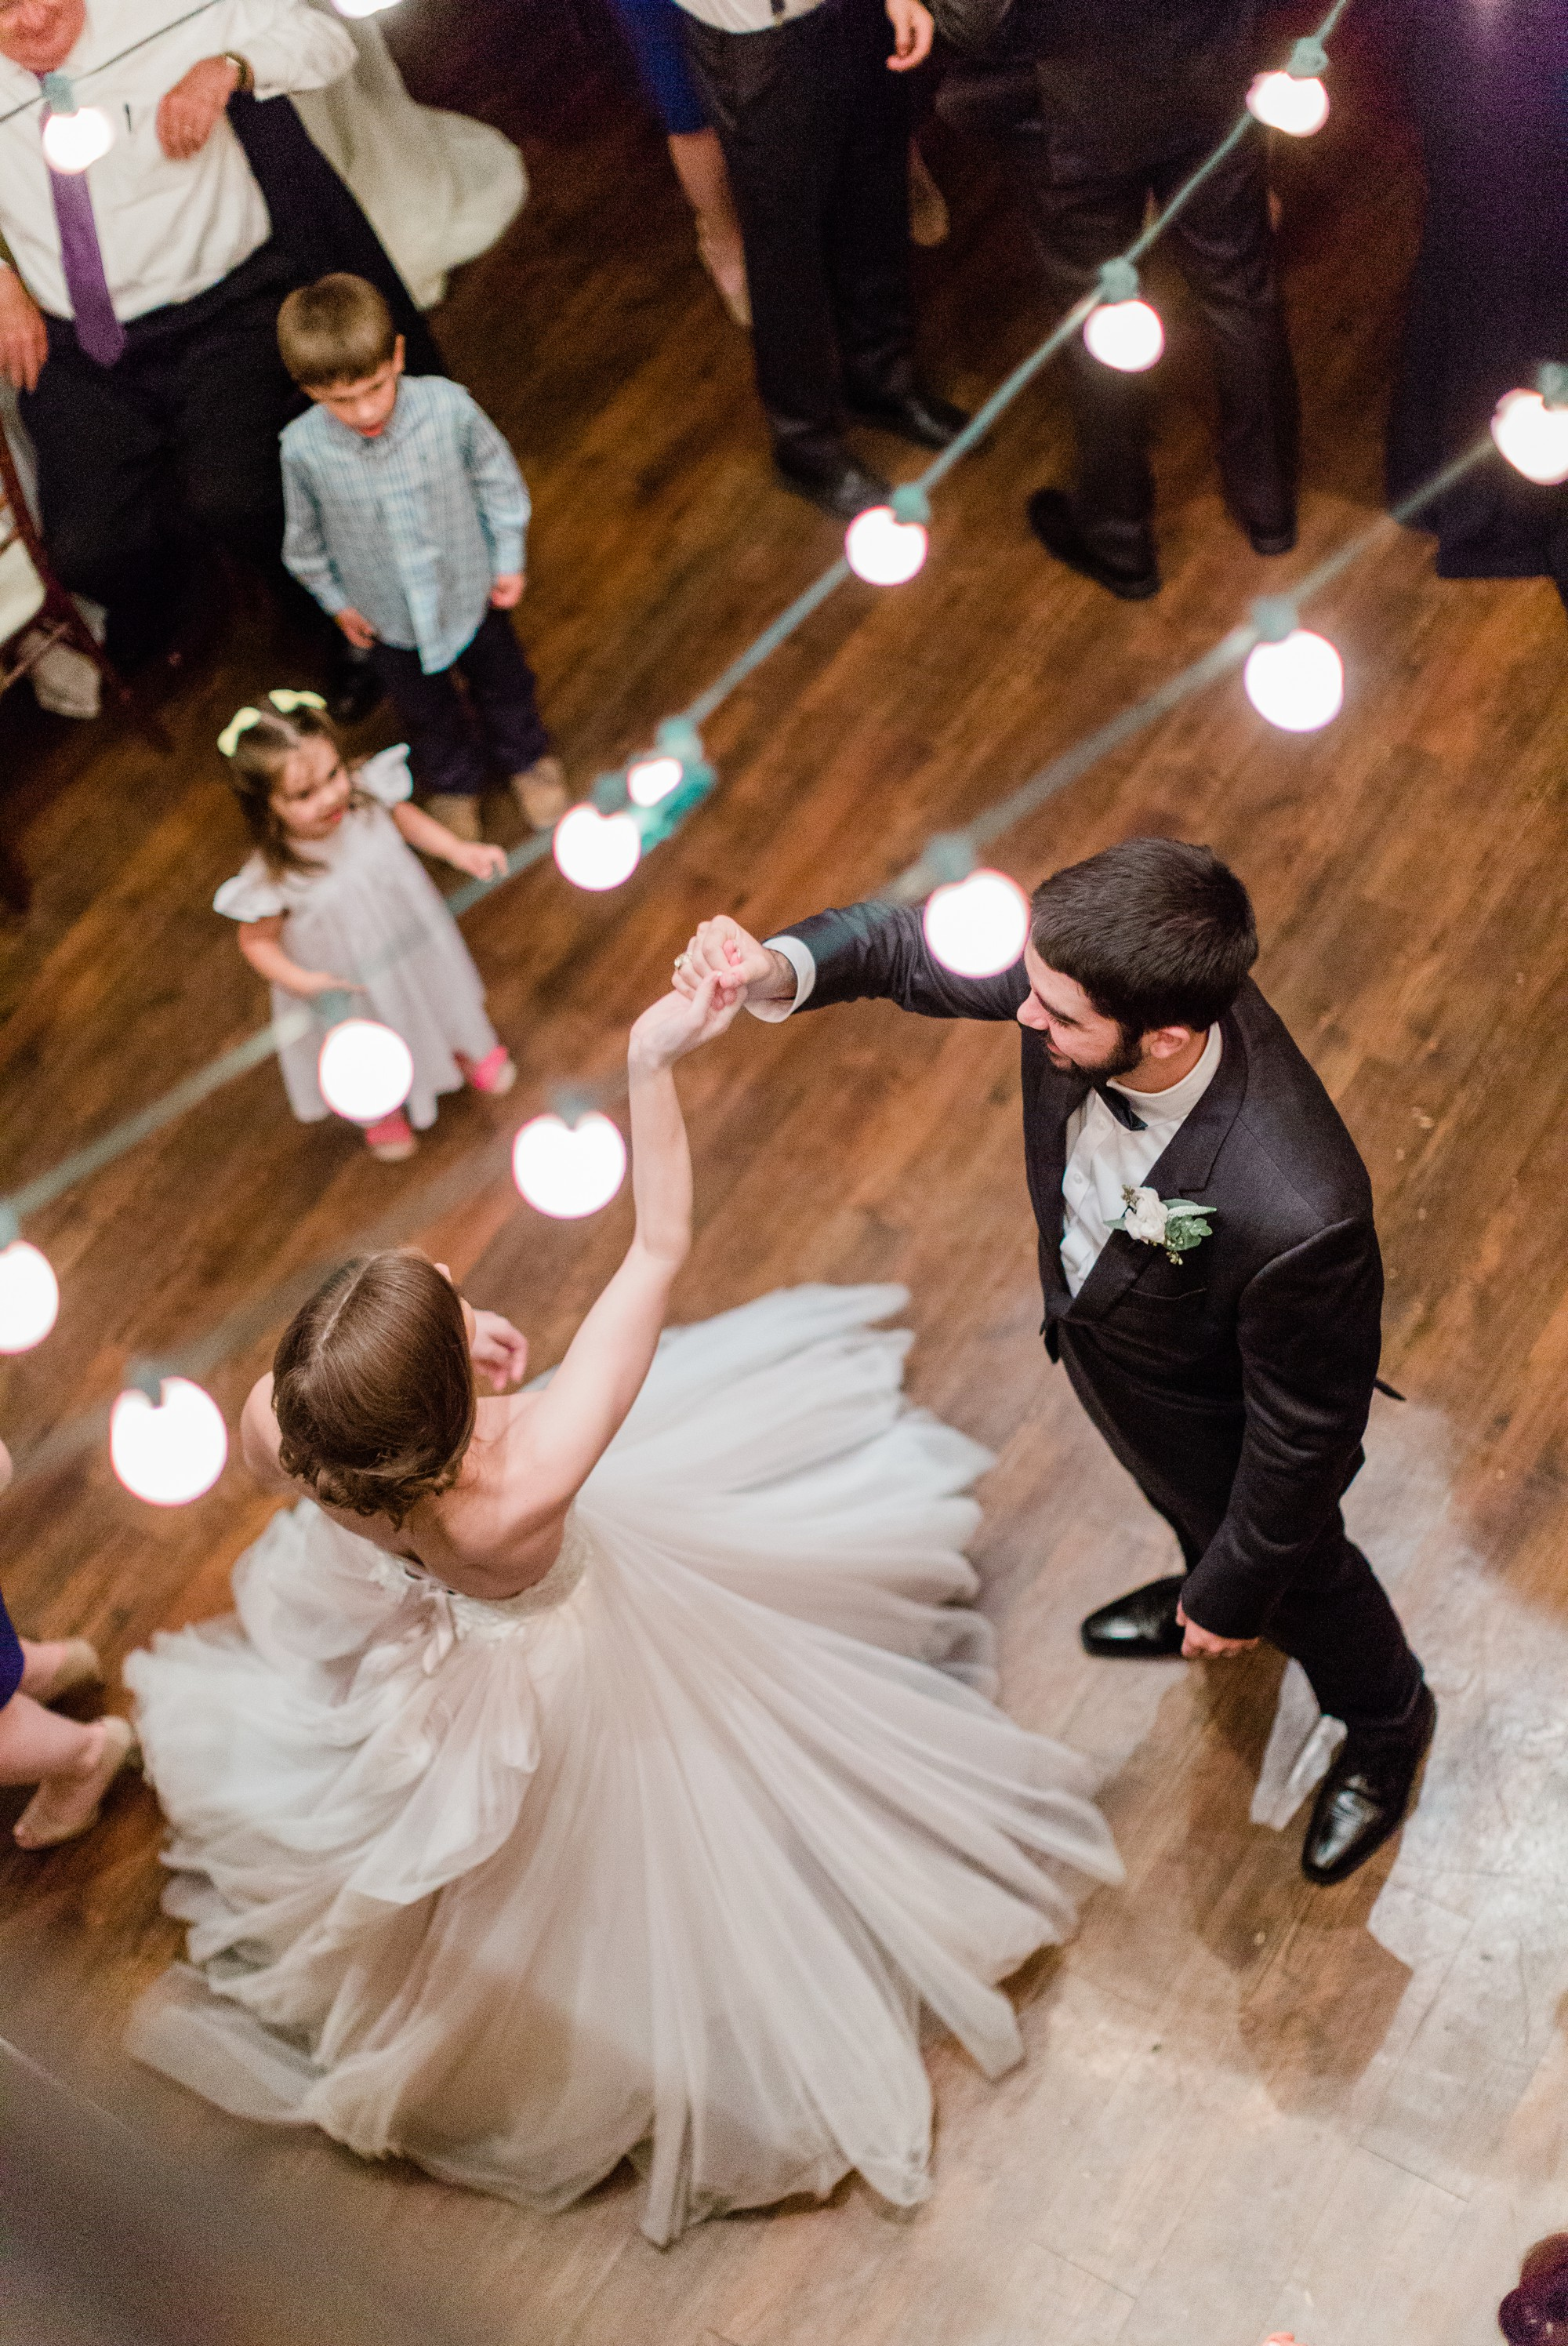 bride and groom dancing, first dance, spring wedding photo, the gallery, houston, texas, dreamy elk photography and design